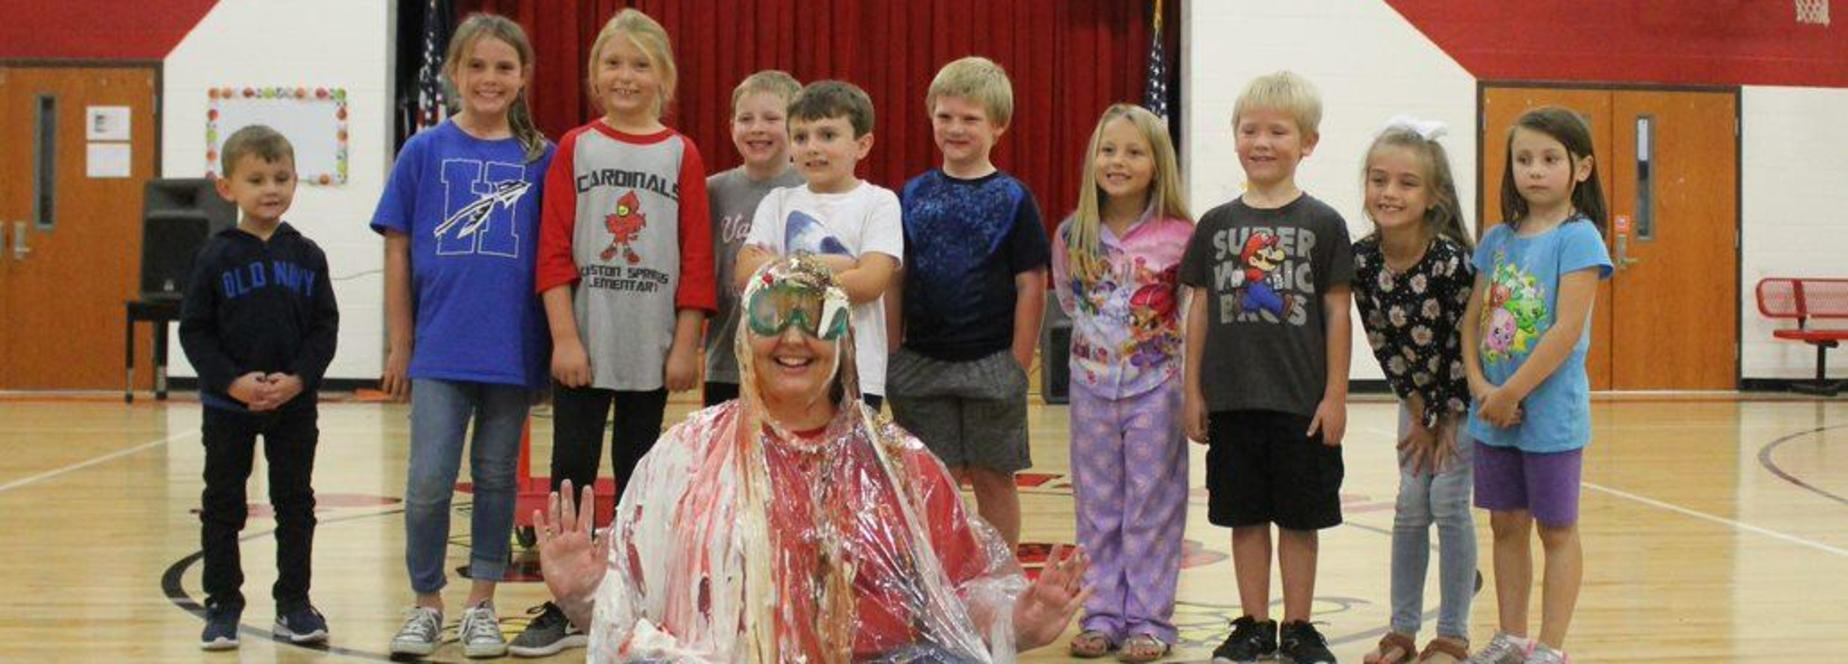 Kingston Springs Elementary School Principal Dawn Wenning was turned into a human ice cream sundae by the school's top sellers in the cookie dough fundraiser.